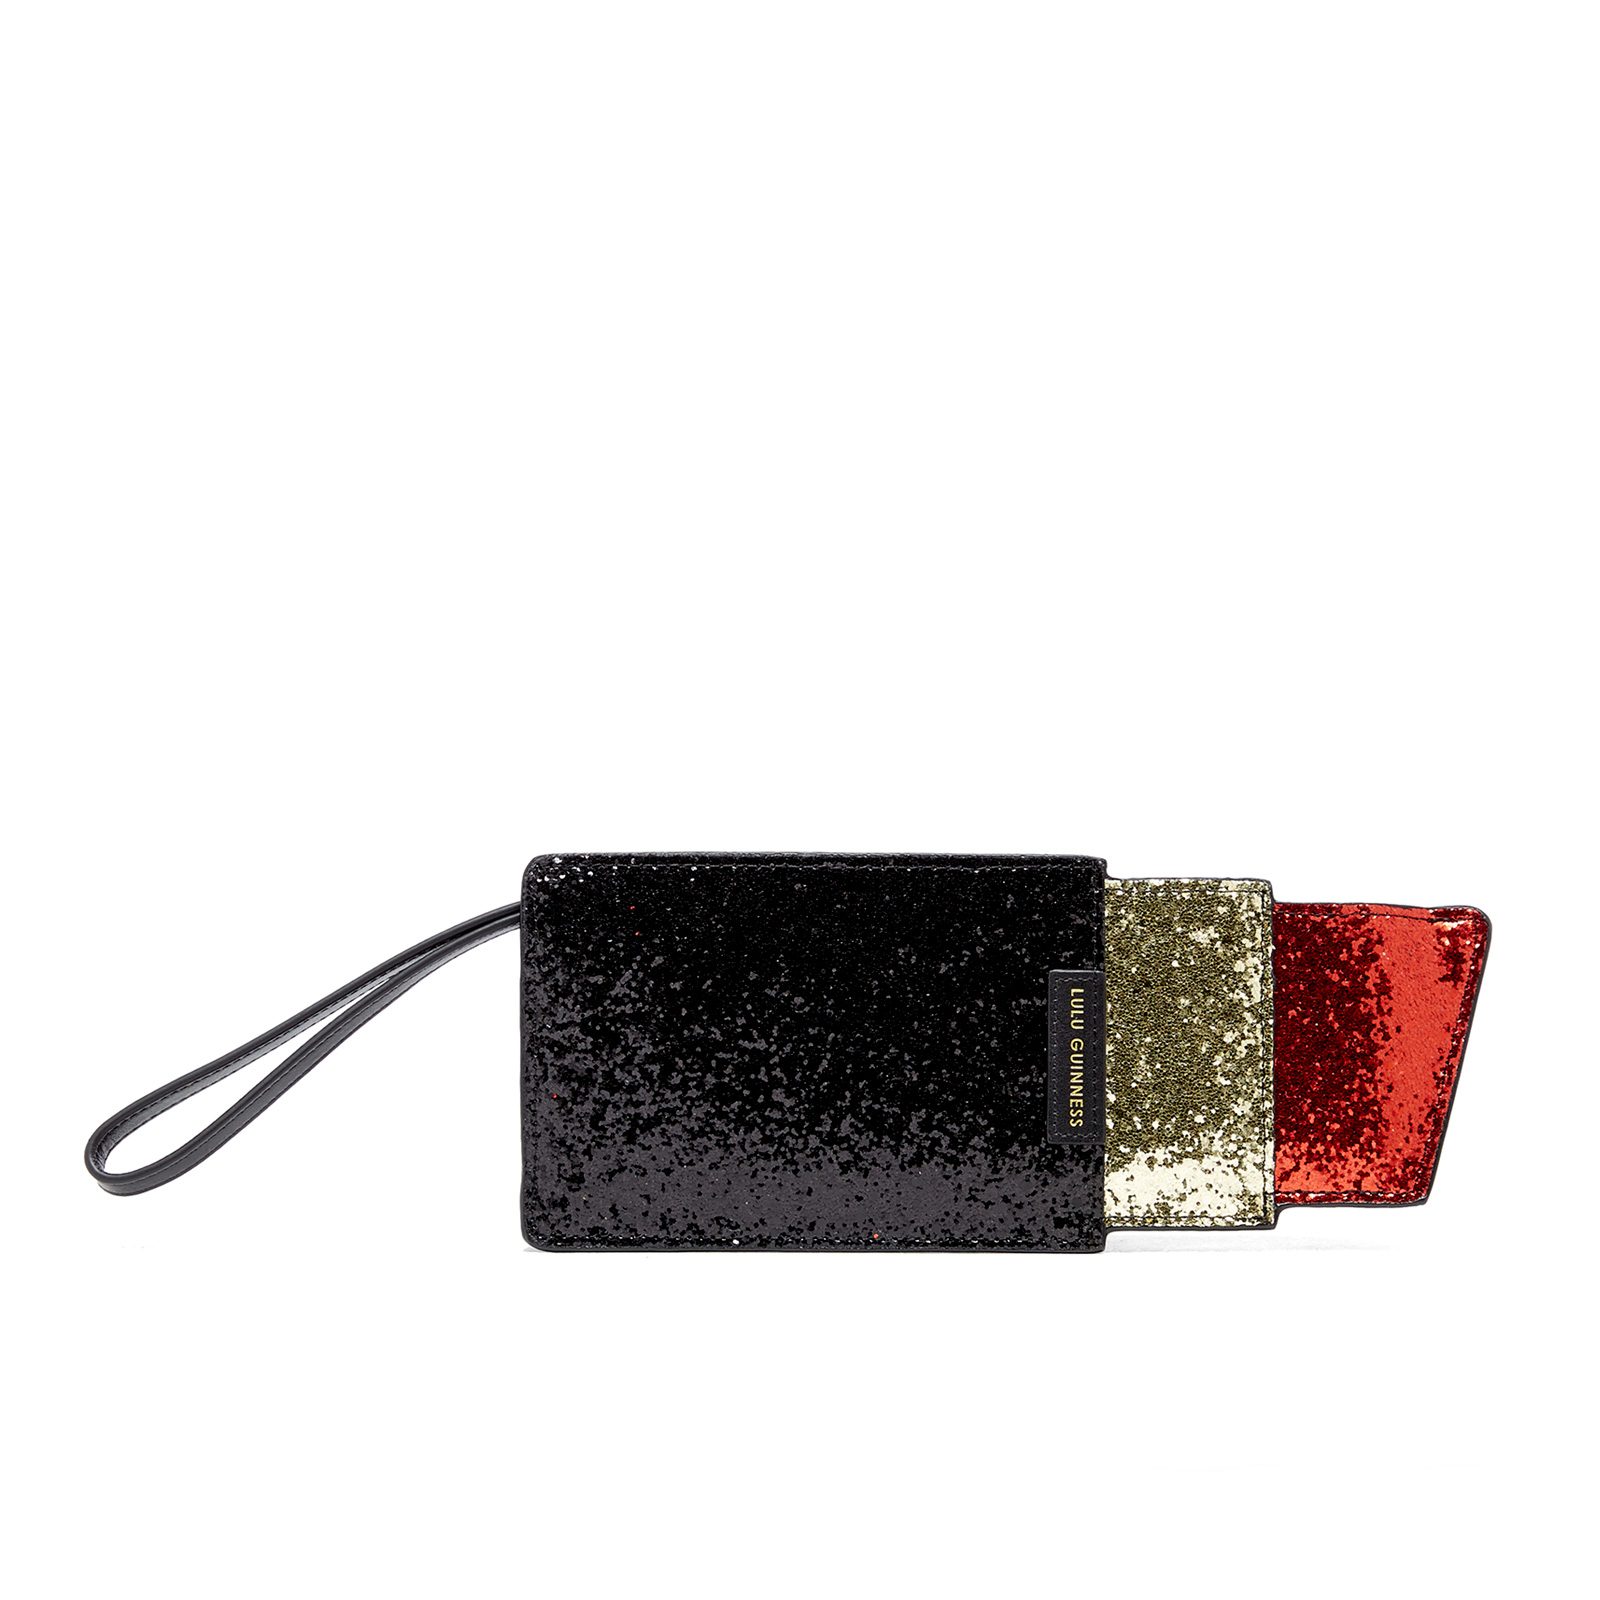 770abcc806f5 Lulu Guinness Women s Glitter Lipstick Pouch - Black Red - Free UK Delivery  over £50